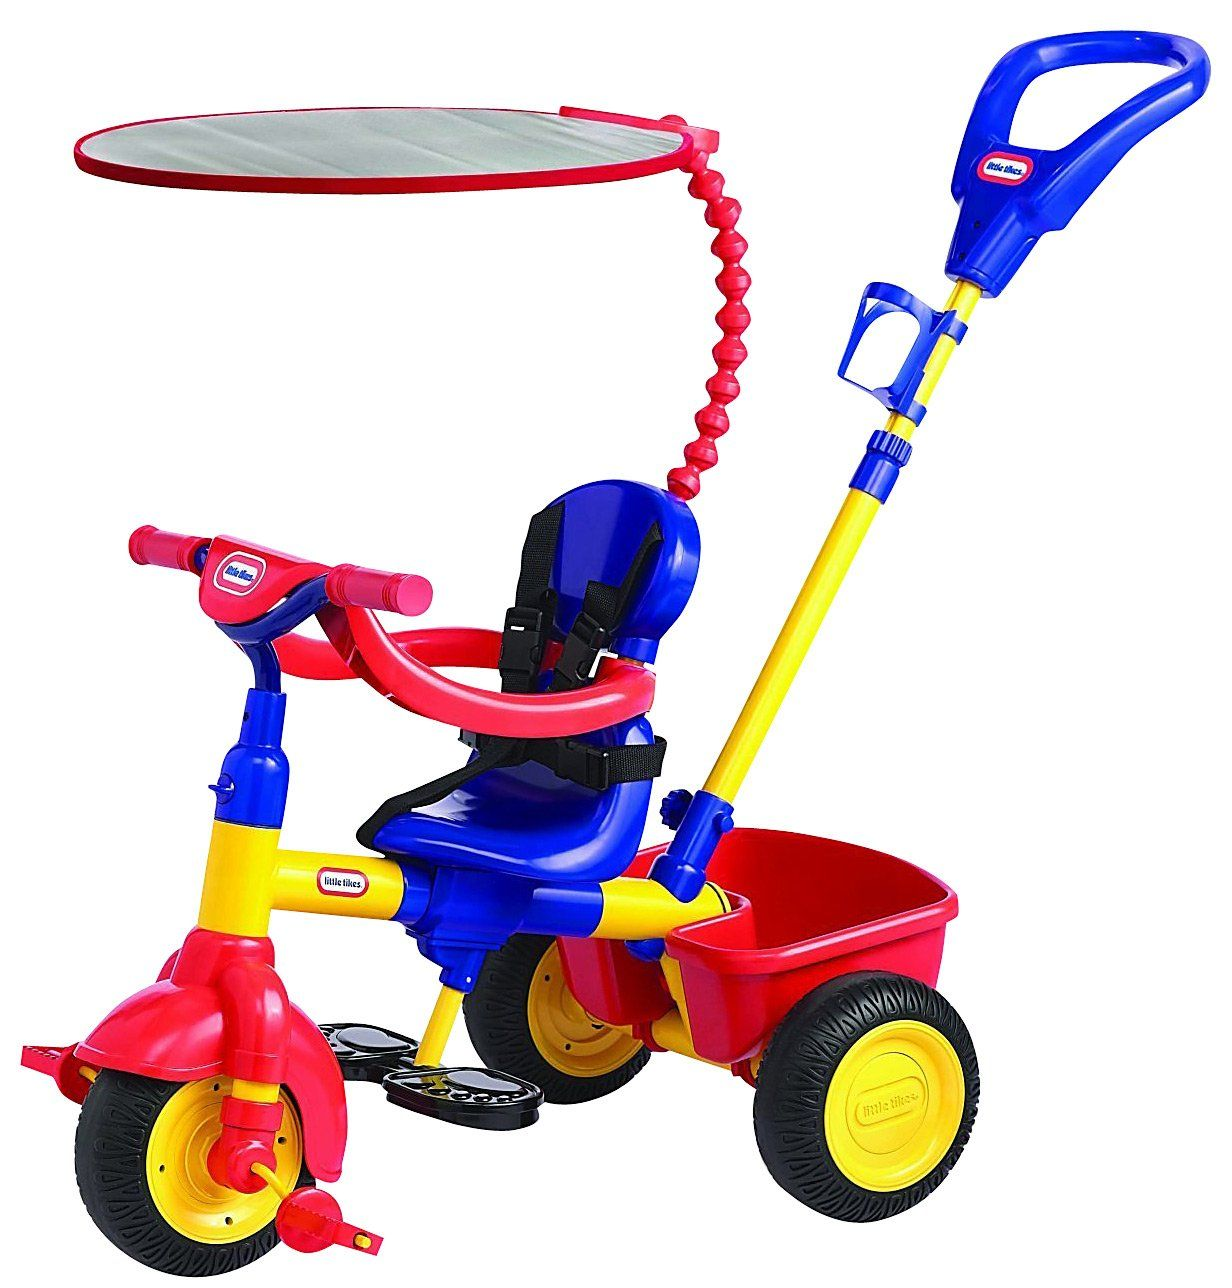 little tikes in smart trike  best price  for the boys  - little tikes in smart trike  best price